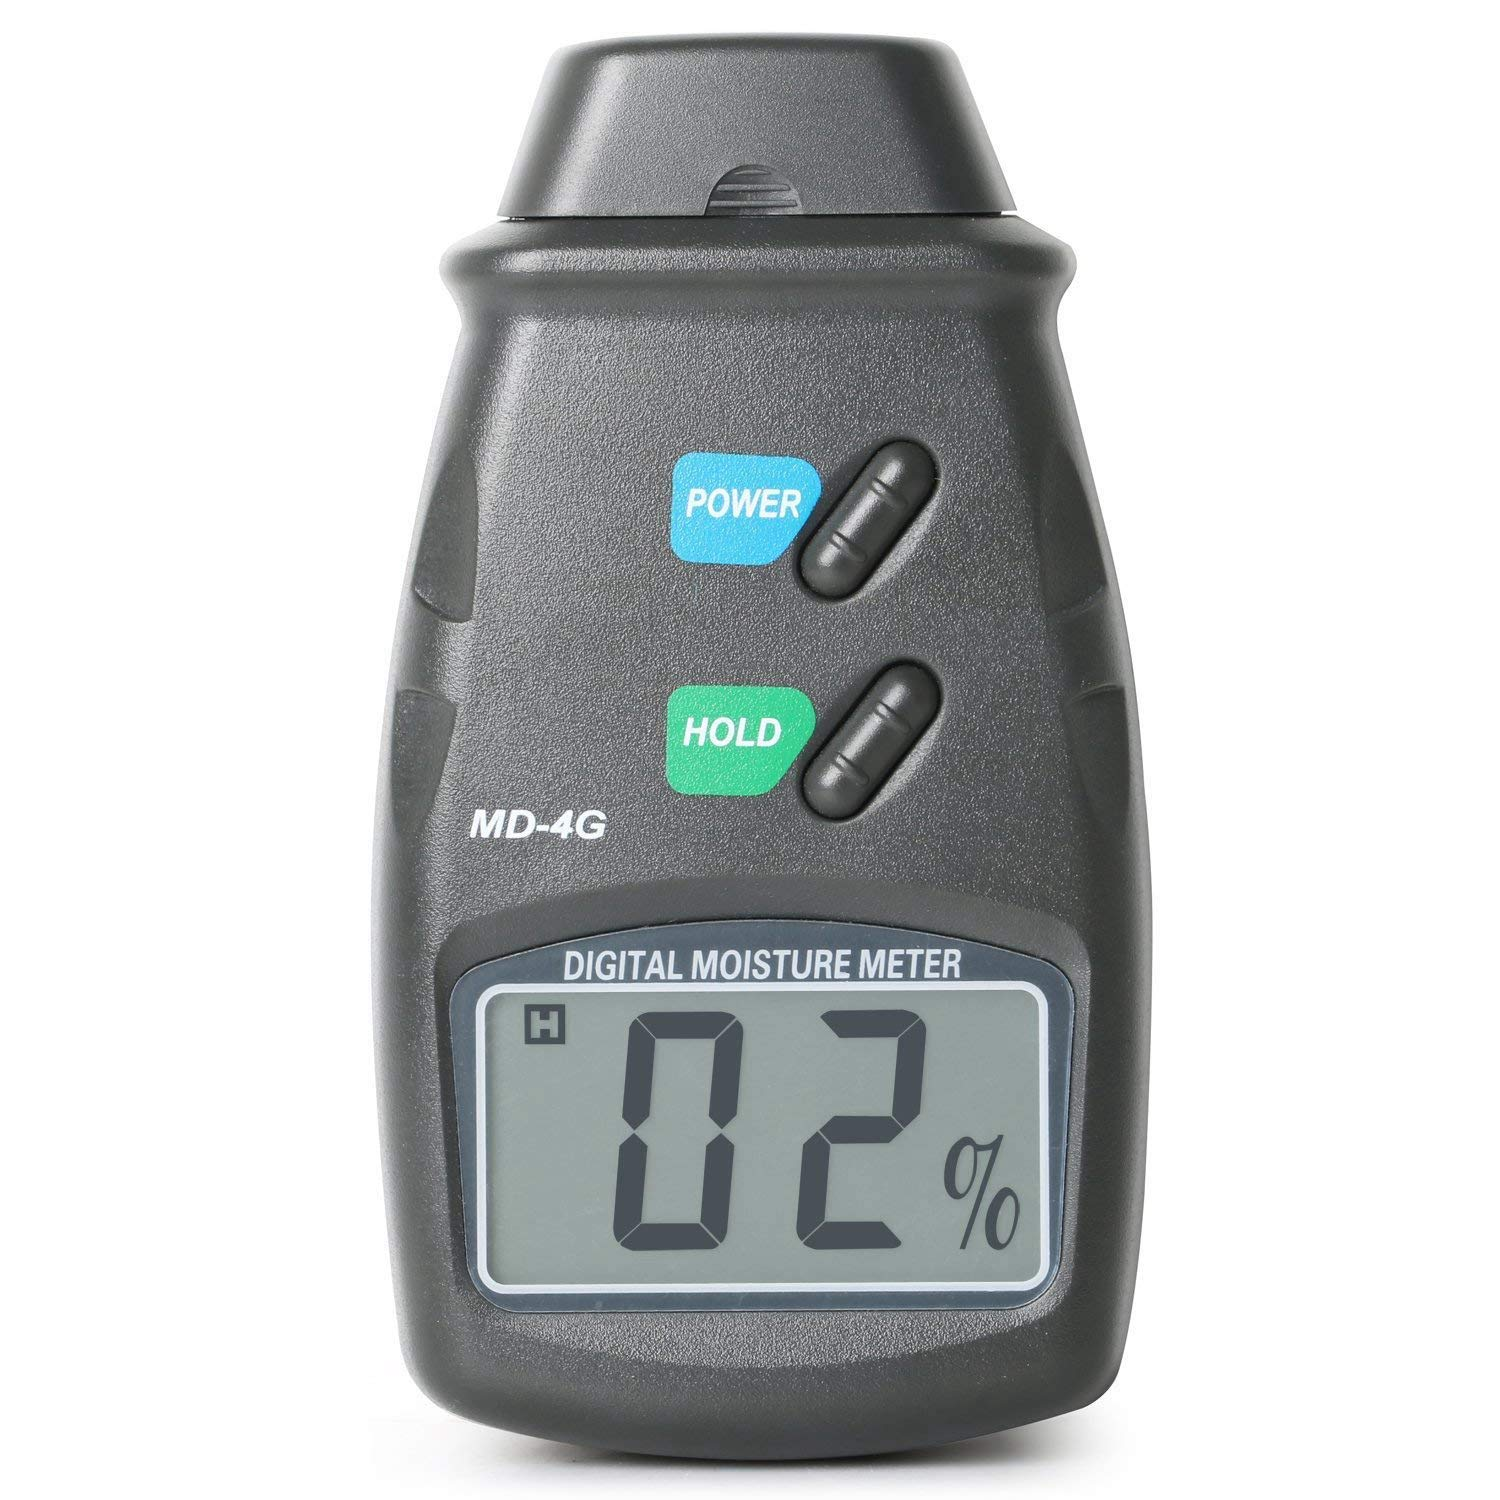 SODIAL Damp Digital Meter and Carry Ca - 2 Pin Moisture Tester for Wood, Plaster Walls